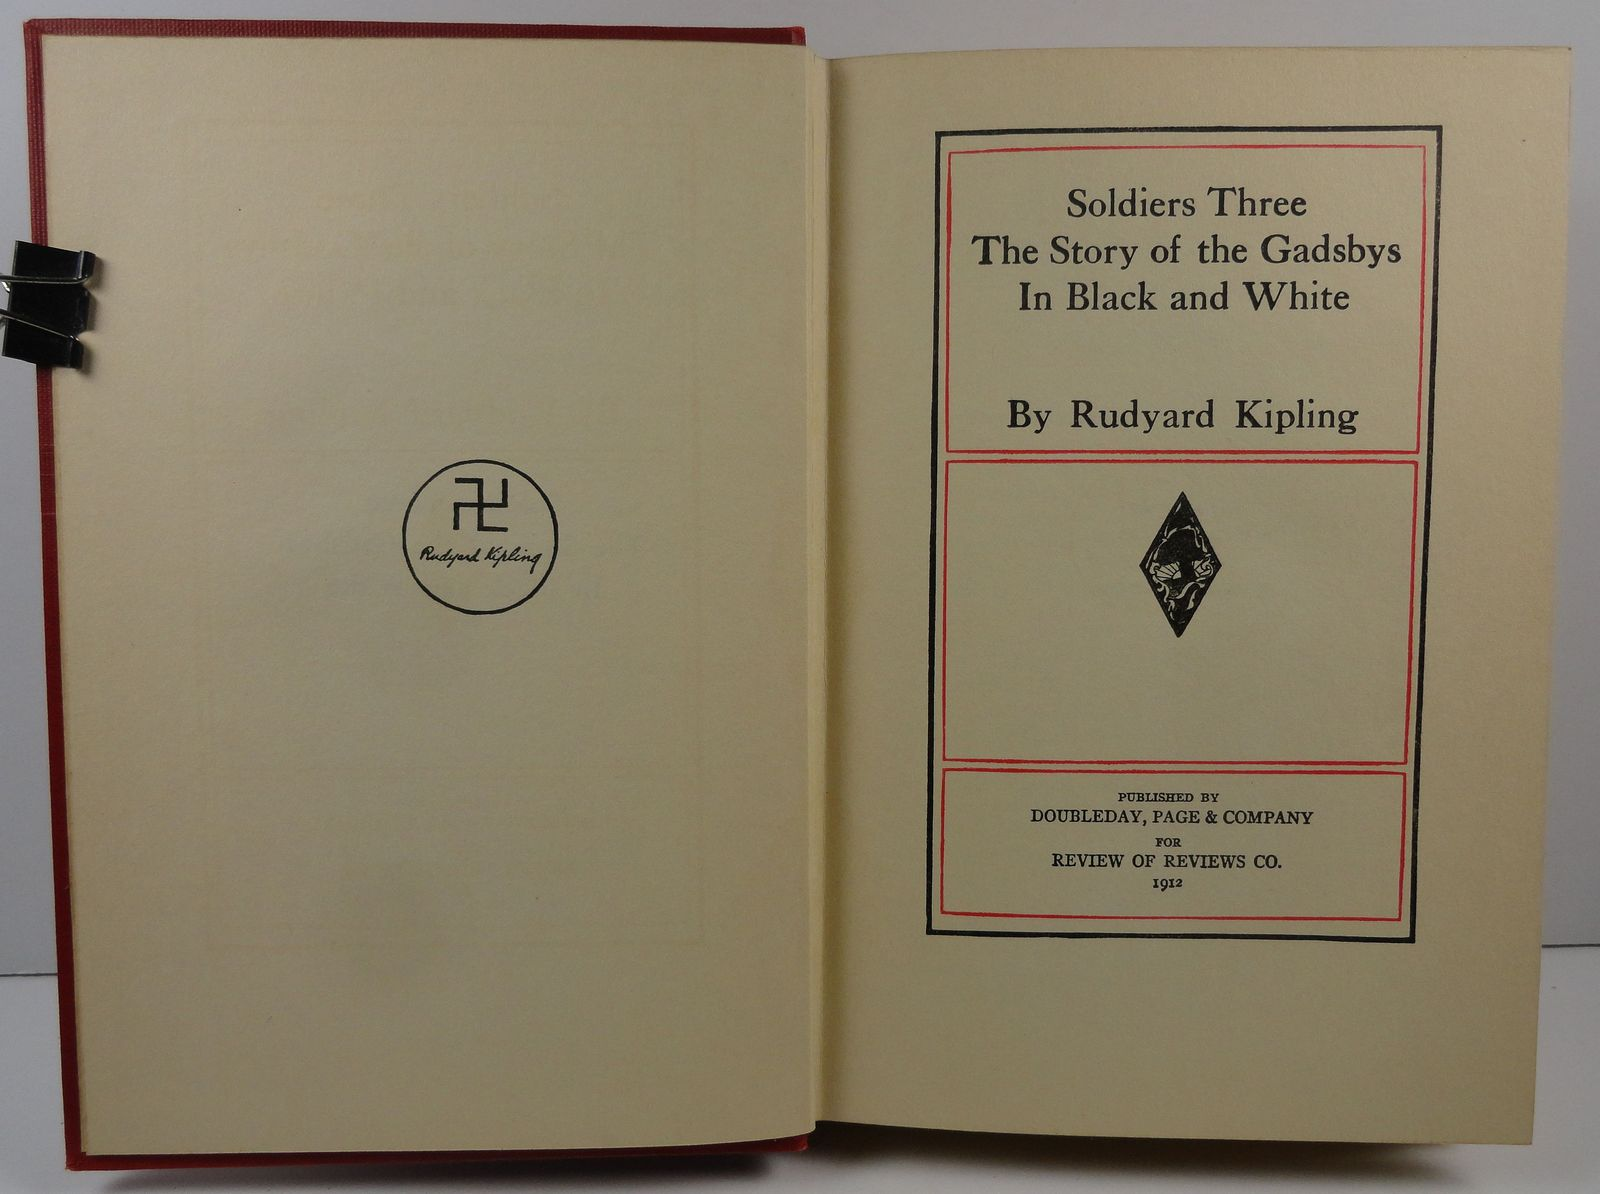 Soldiers Three, Story of the Gadsbys by Rudyard Kipling 1912